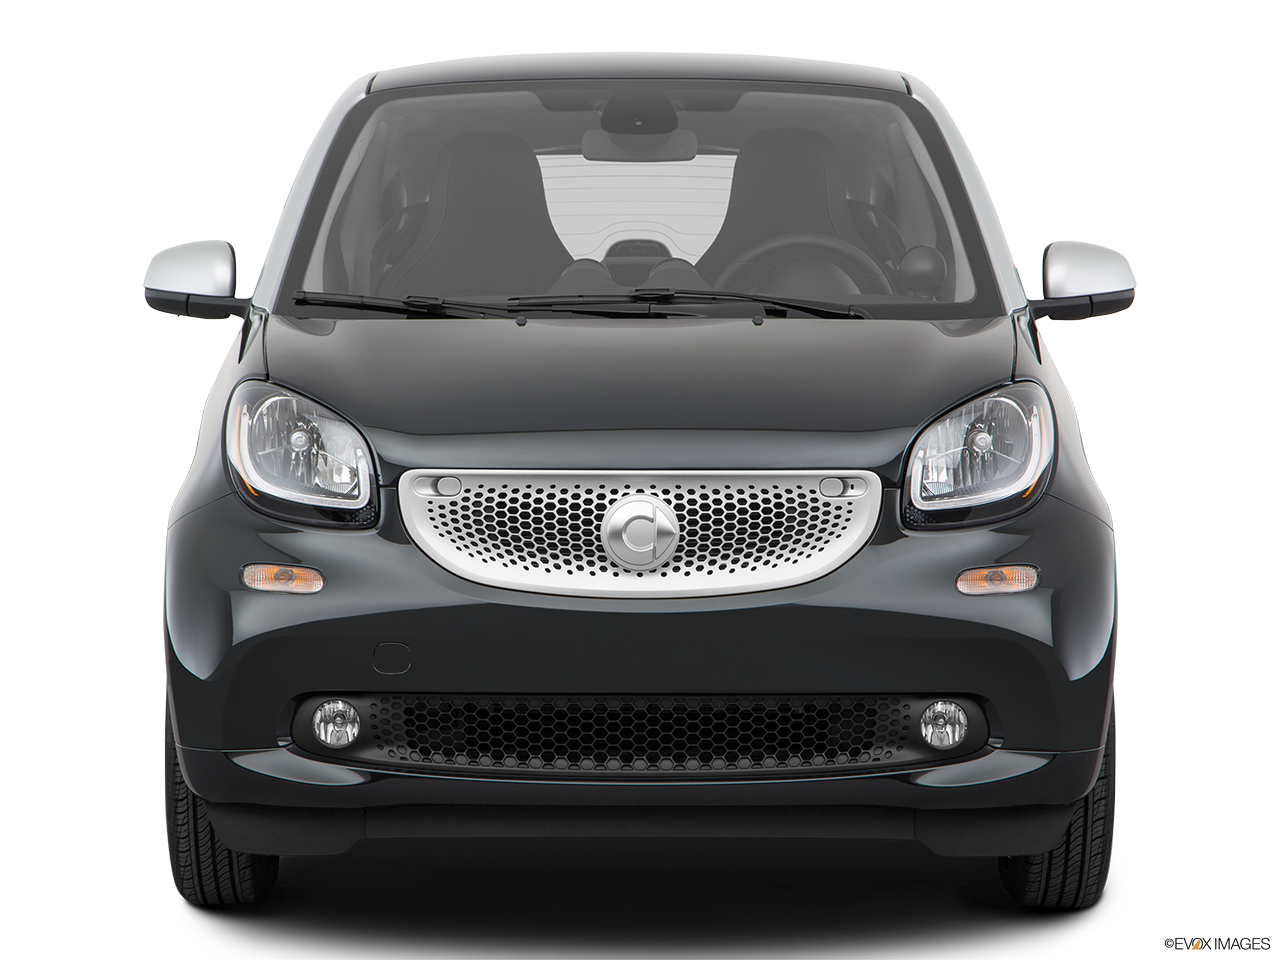 Front view of the Smart fortwo electric